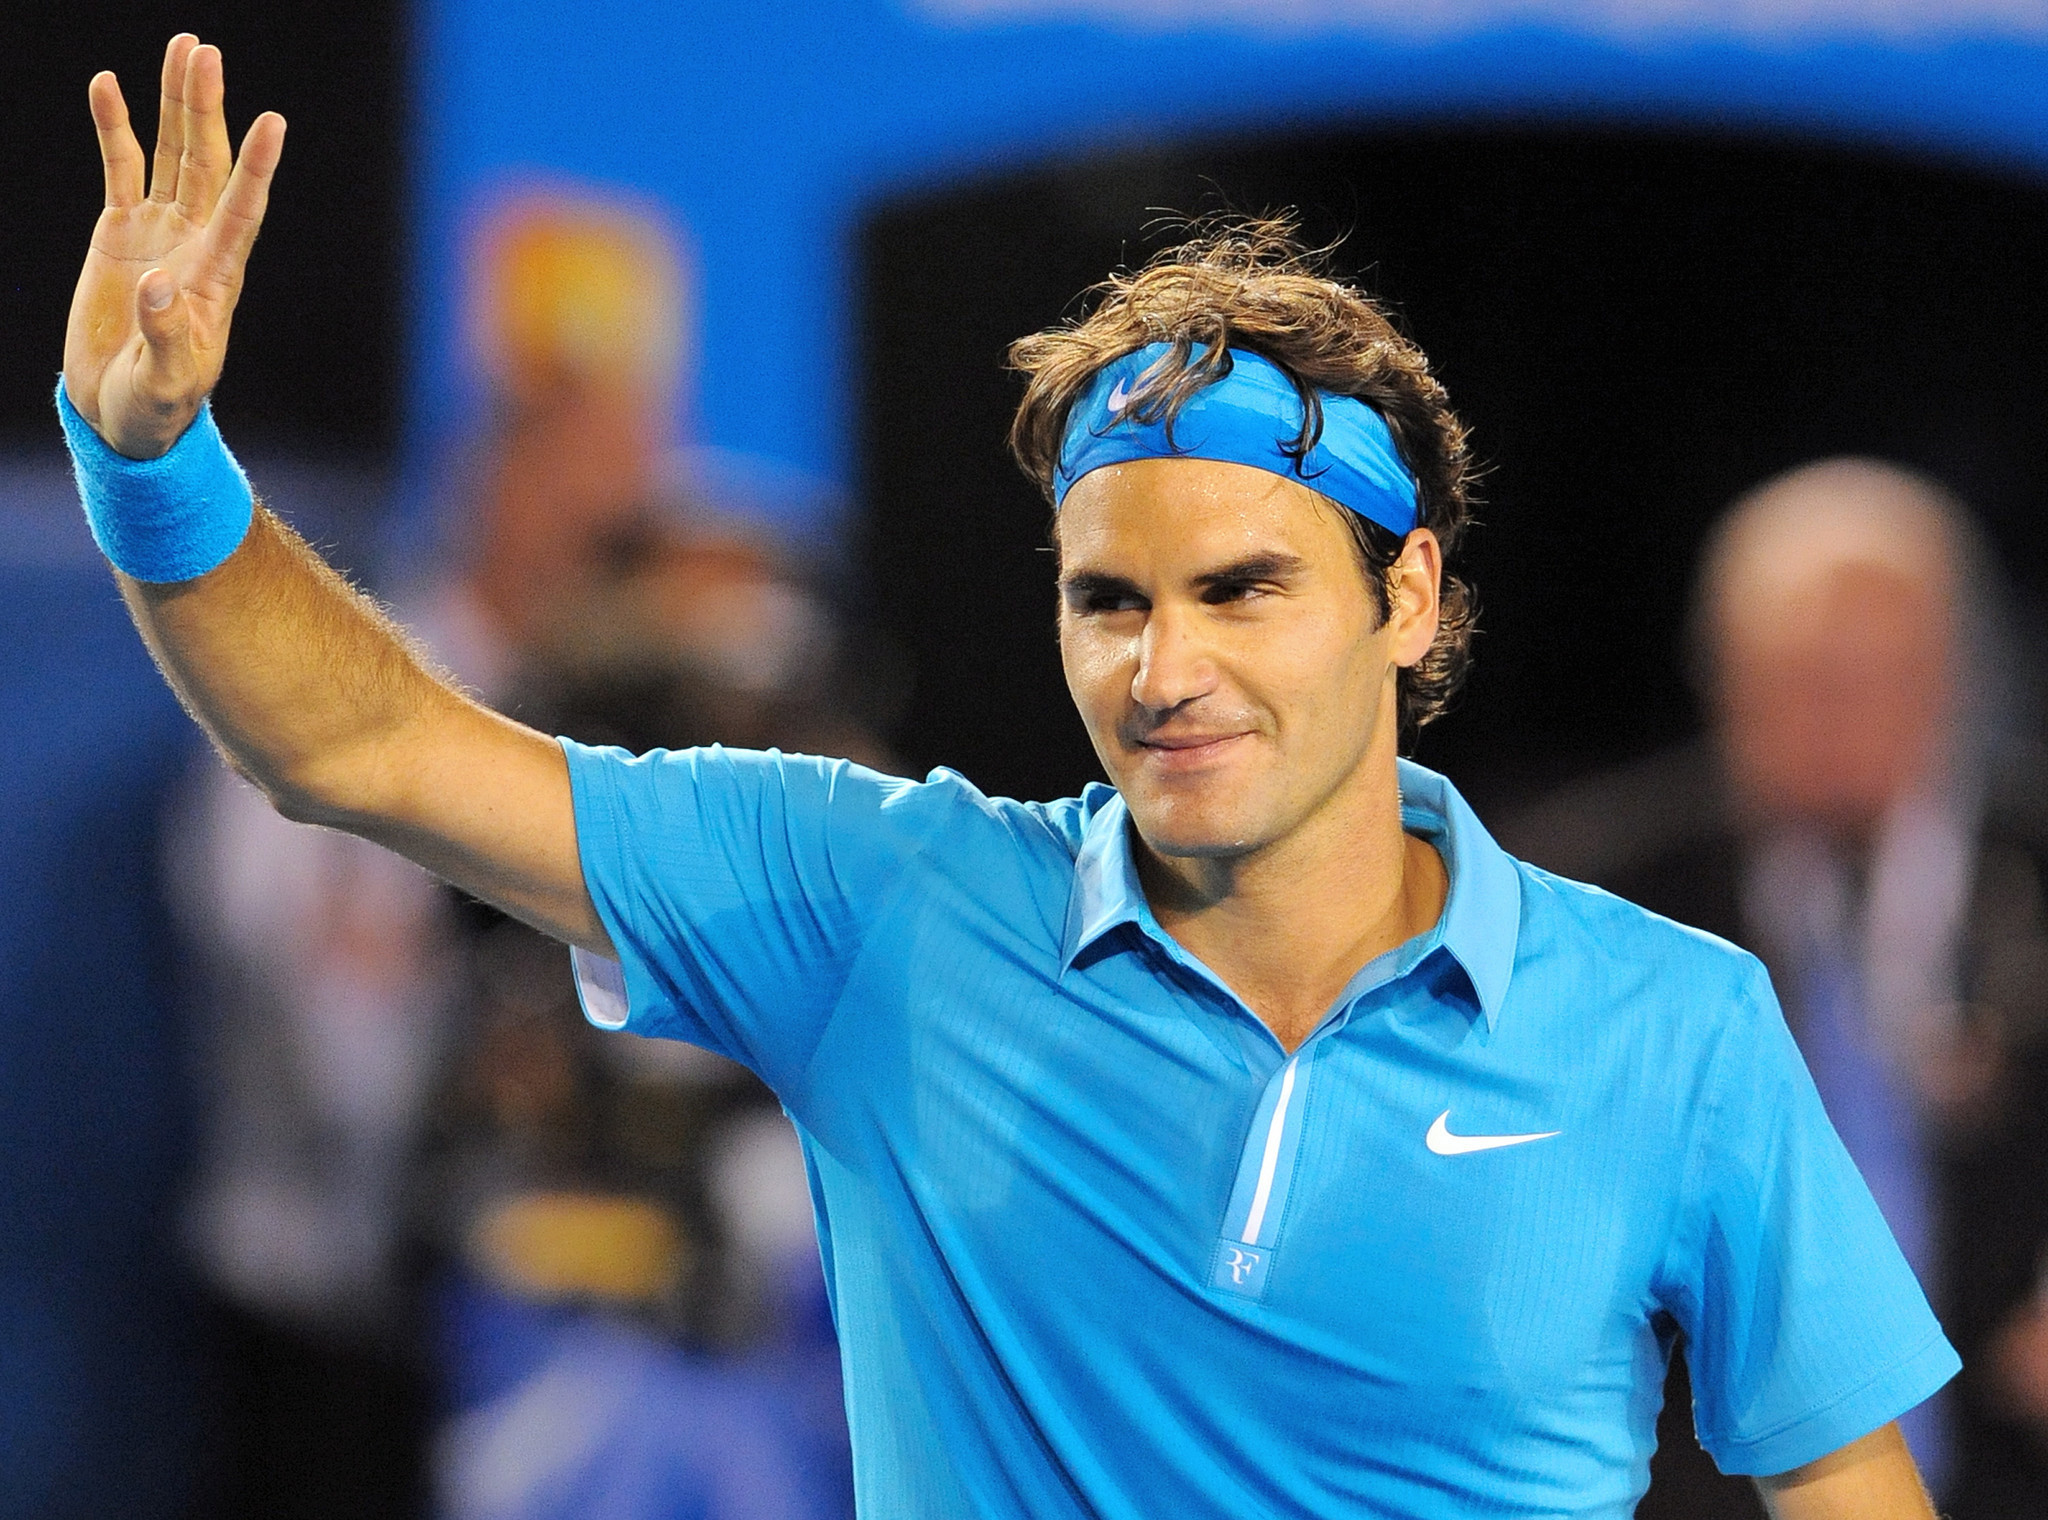 Hyde Roger Federer is beating men s tour and Father Time in a way